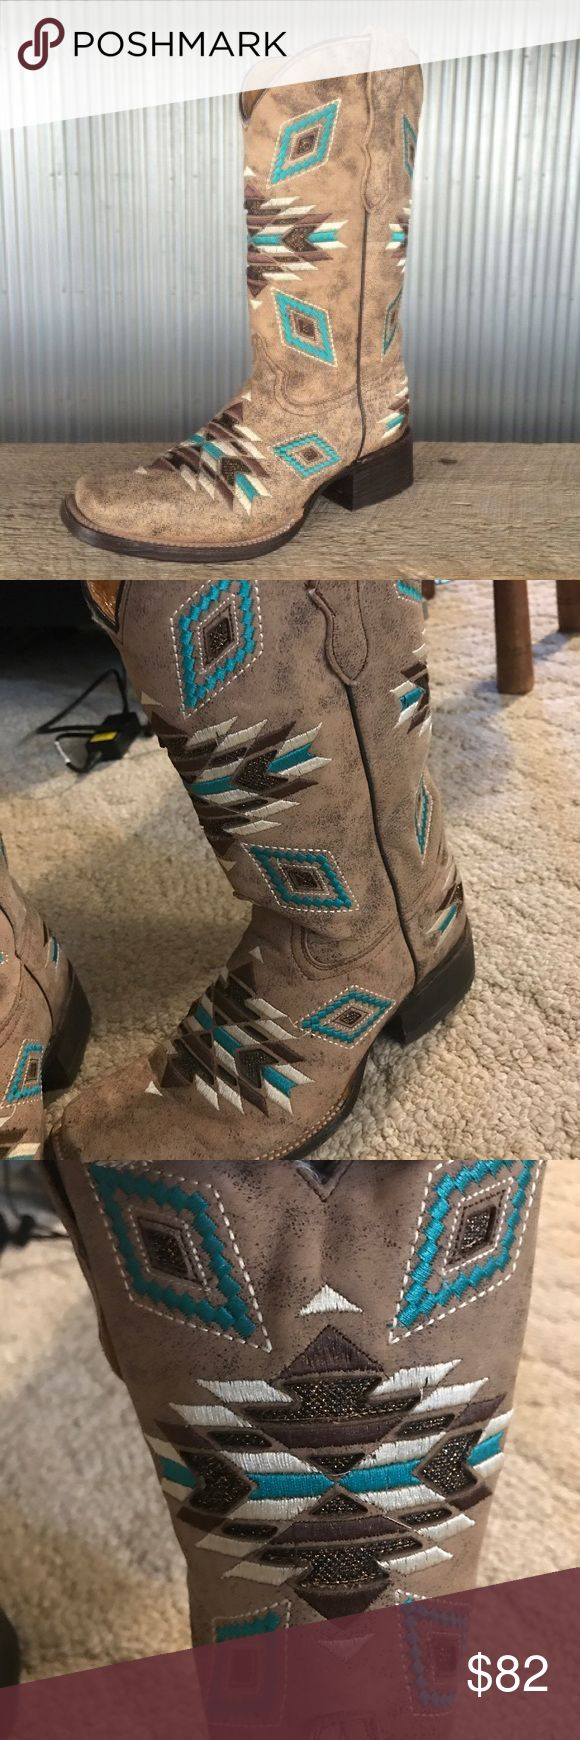 Corral Distressed Brown Aztec Boot *PRICE FIRM* Corral Distressed Brown Aztec Square Toe Teen Boot. Style# 1099. For the finest western cowboy boots, the brand to trust is Corral Boots. These handcrafted boots are made with high quality exotic skins and leather by the most experienced craftsmen in Mexico. These girl's cowhide leather boots feature a 9in shaft height, and 9in approximate circumference. Corral Boots will likely become one of your new favorite brands of cowboy boots! Cowhide…